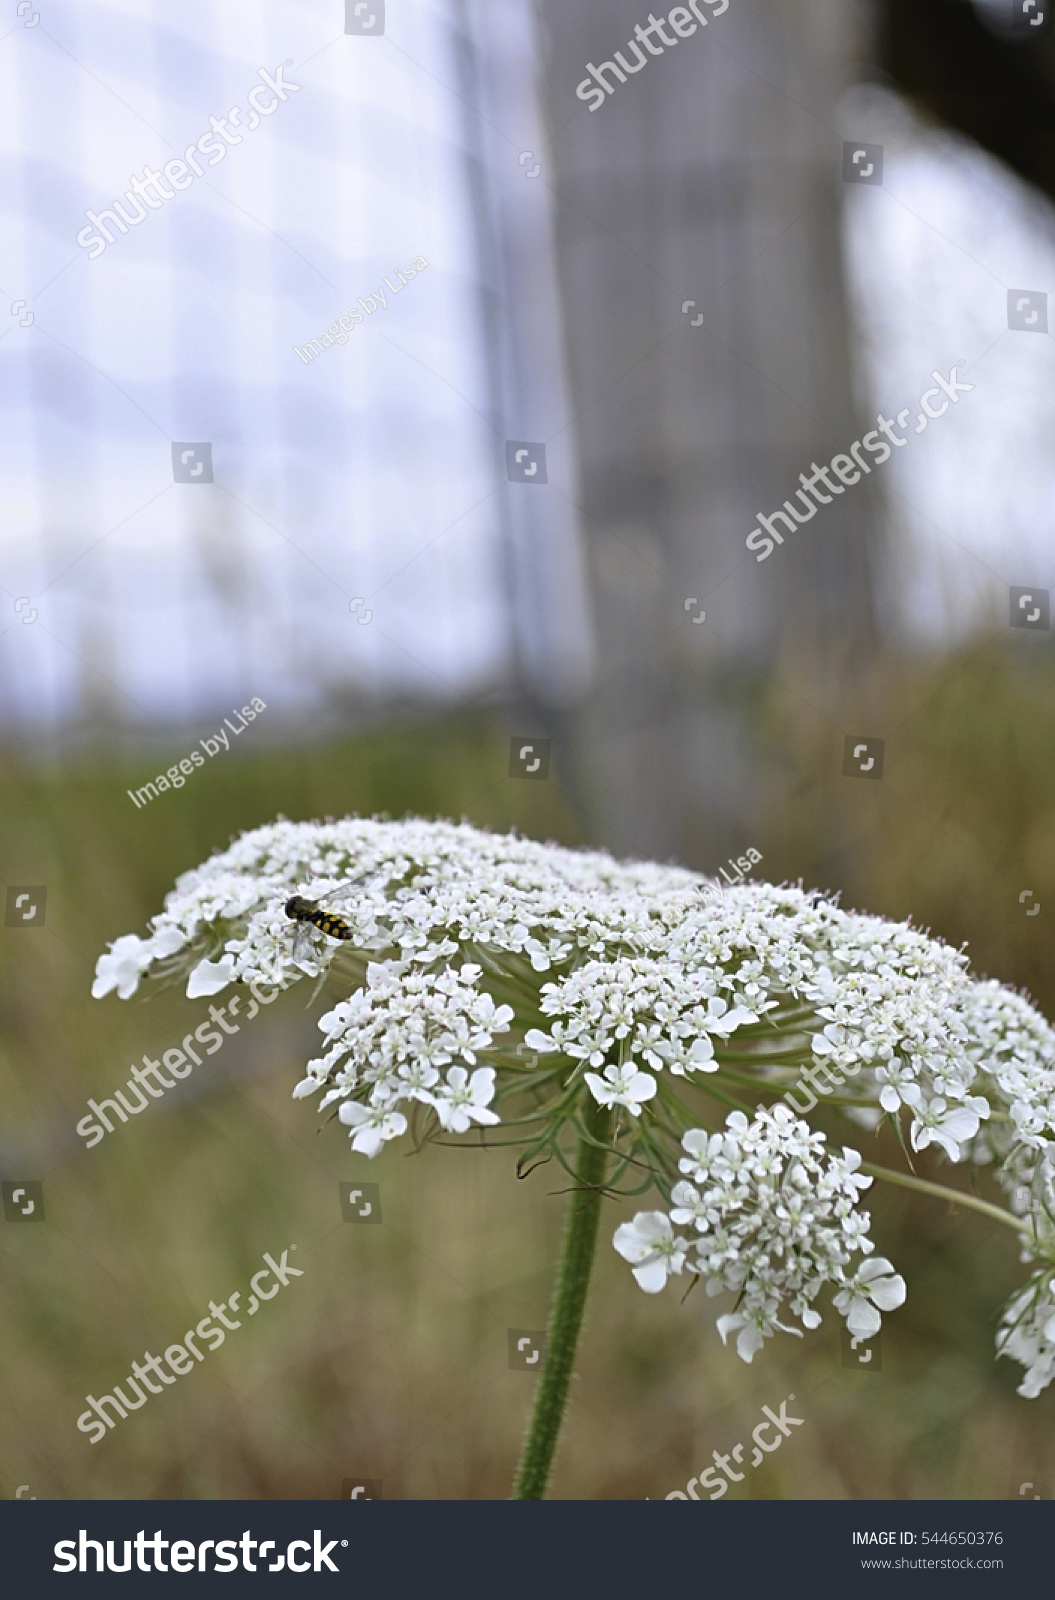 White flowers weeds near gate fence stock photo edit now 544650376 white flowers or weeds near a gate and fence with an insect on it mightylinksfo